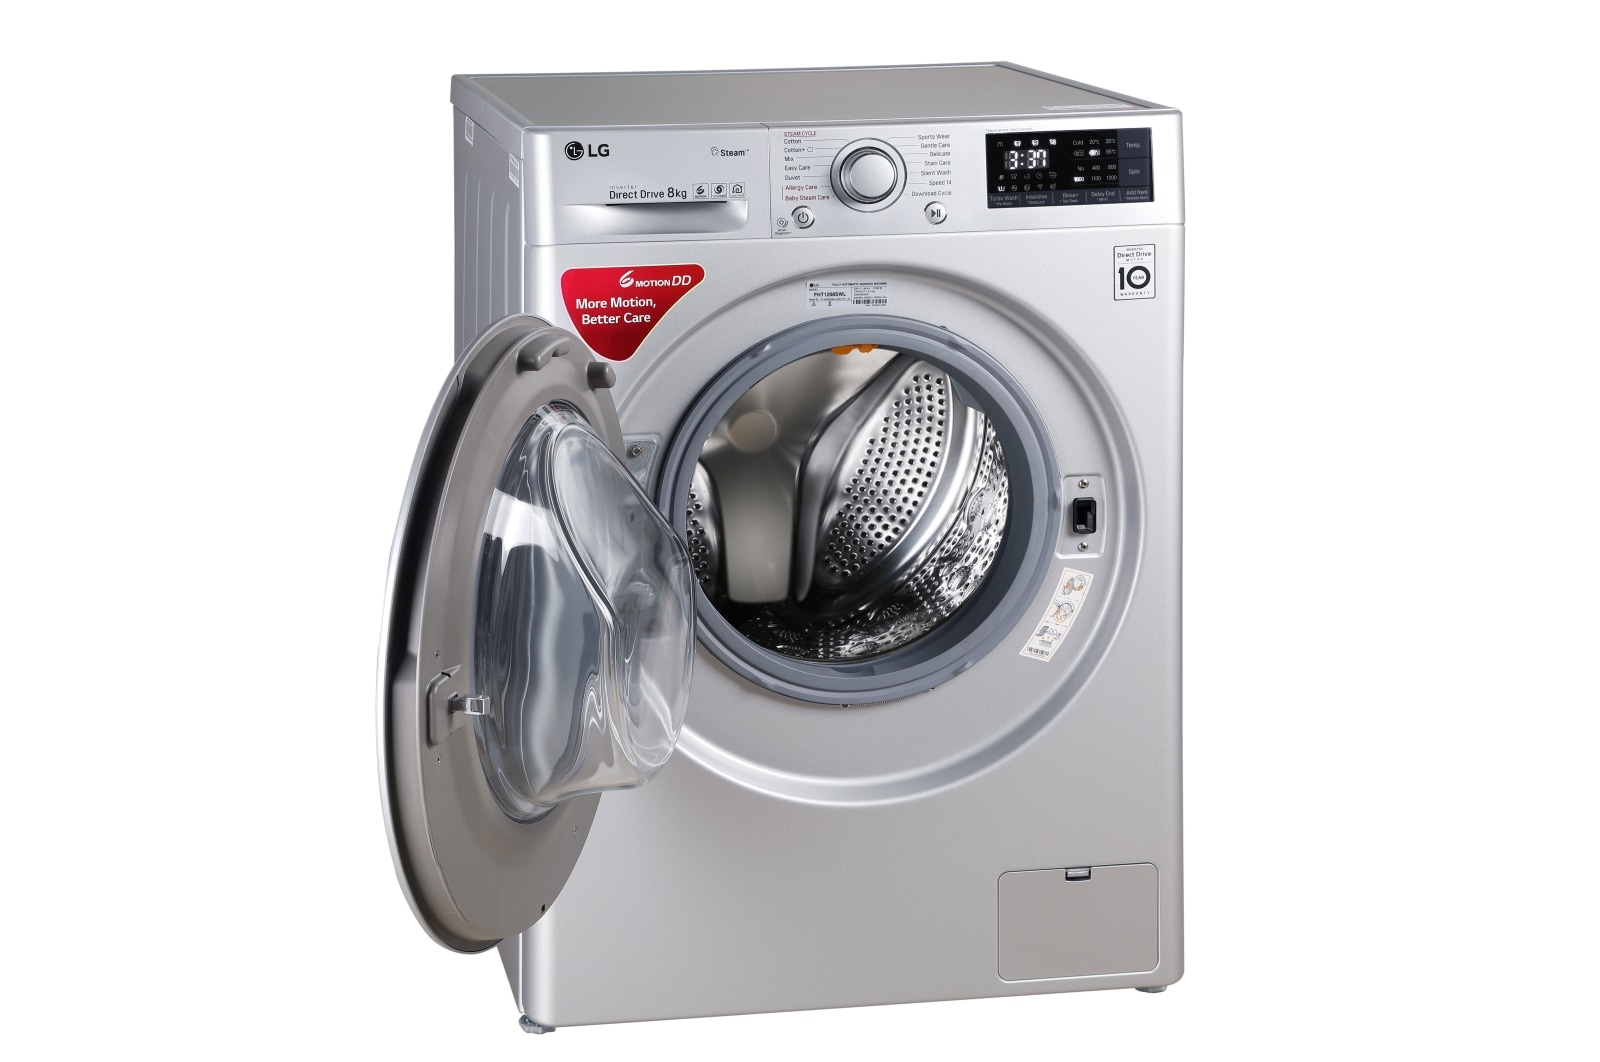 Lg 80 Kg Washing Machine With Steam Turbowash Technology India Motor Wiring Diagram Share The Knownledge